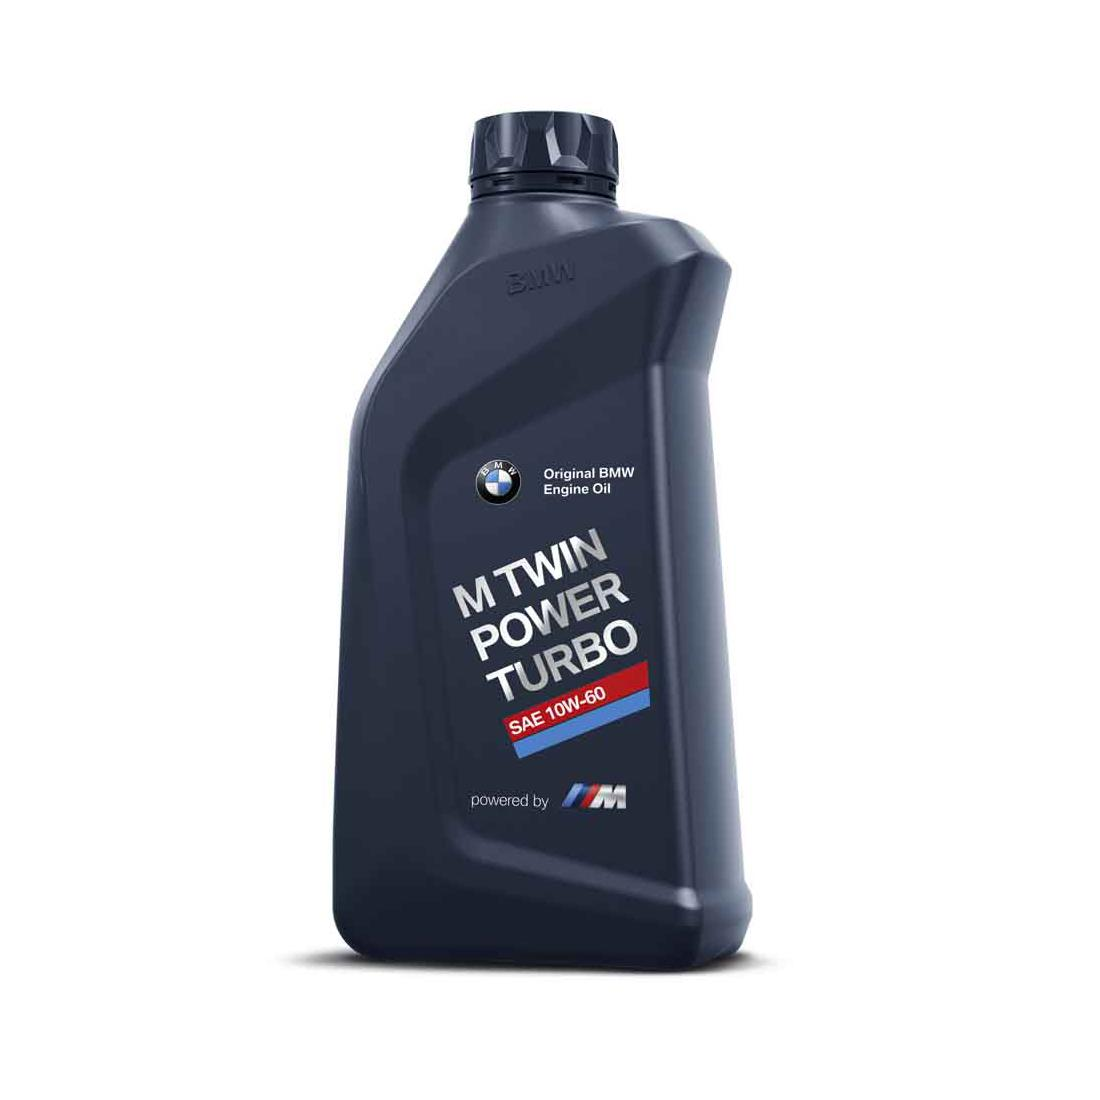 M TwinPower Turbo 10W-60 Engine Oil - 1 Liter